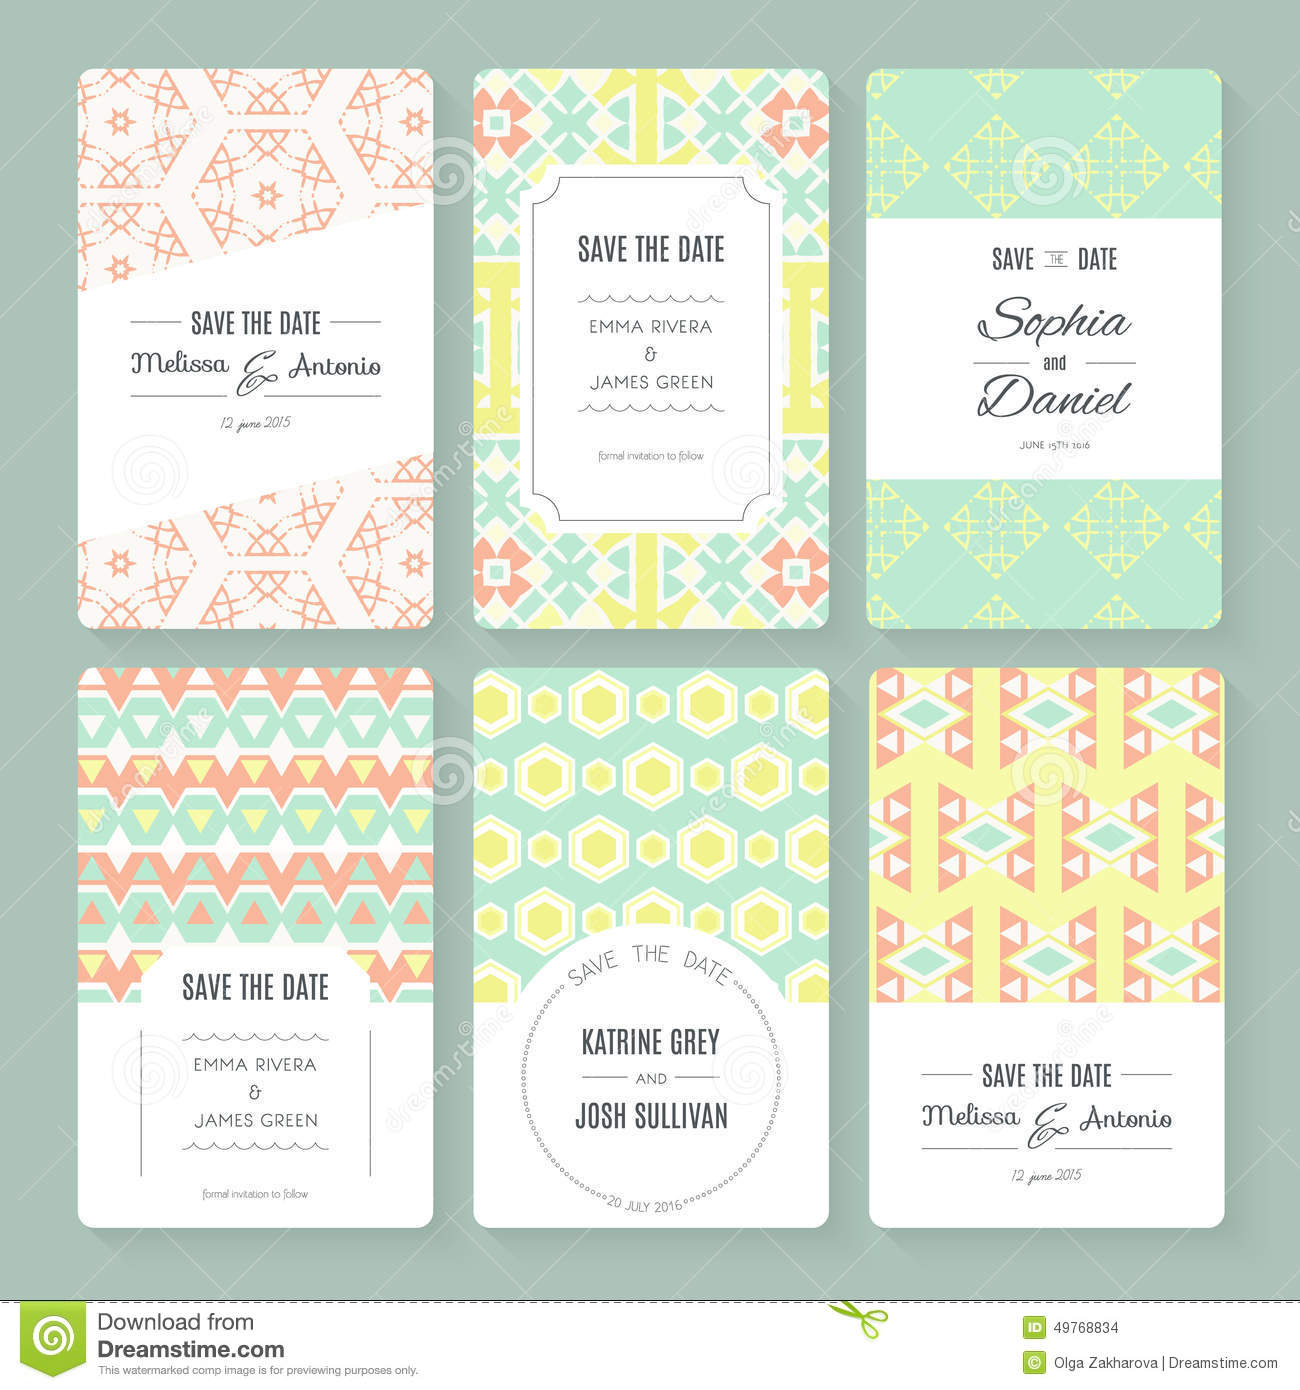 Save The Date Collection Stock Vector - Image: 49768834